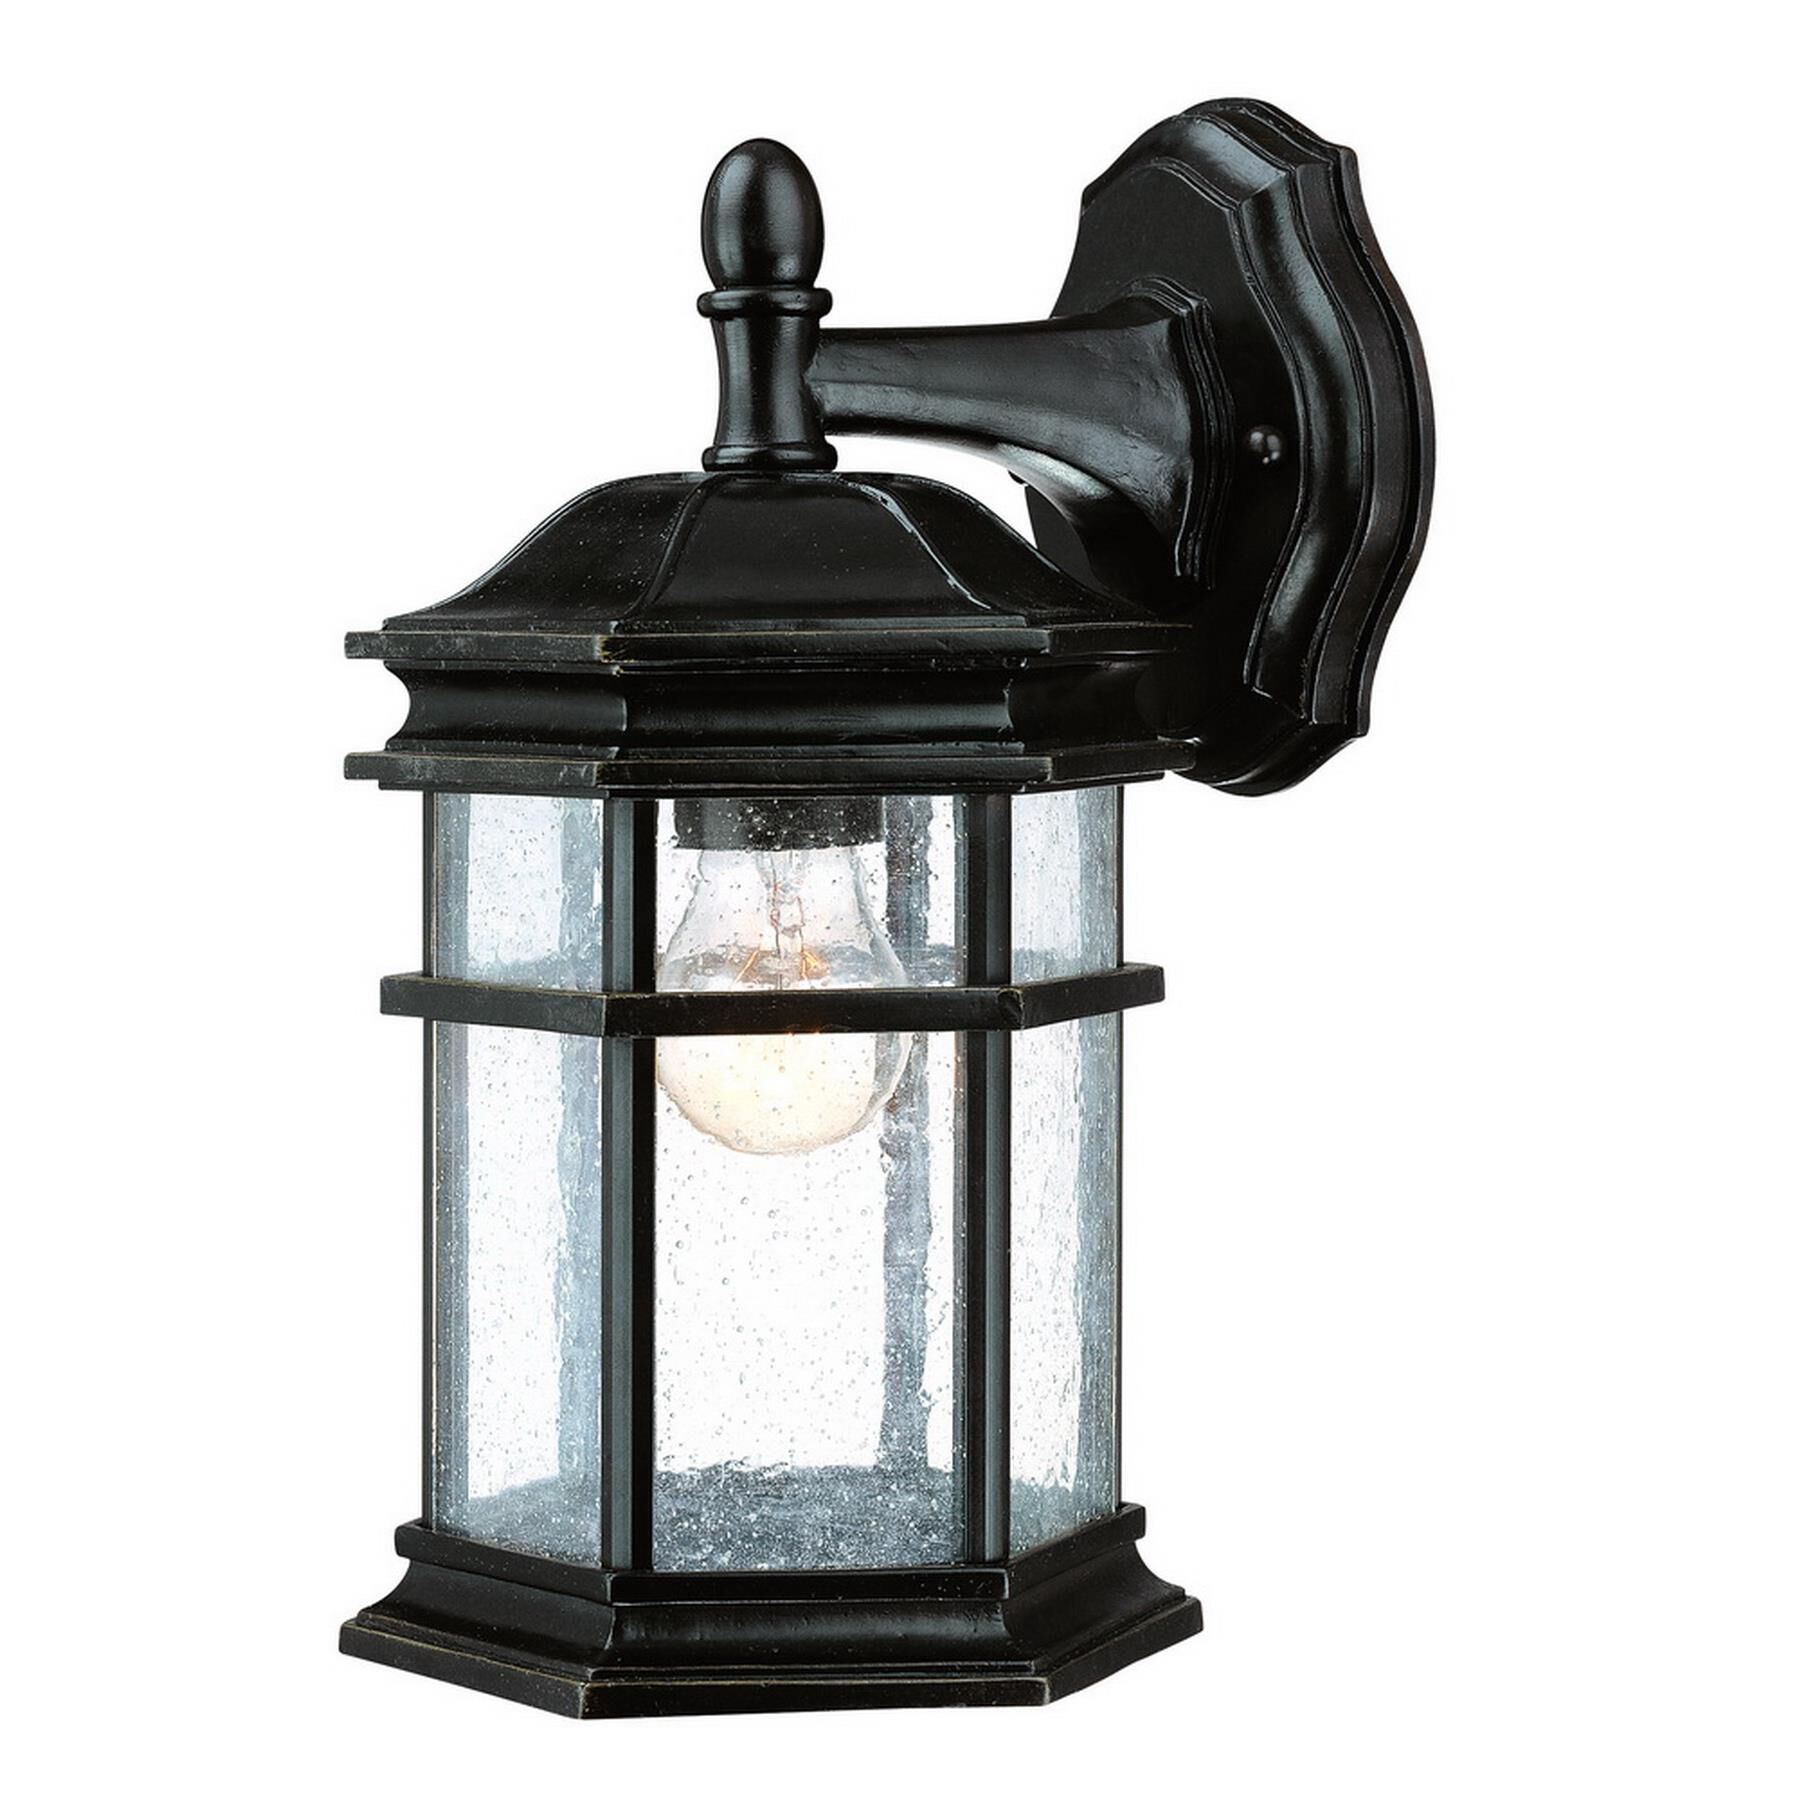 Dolan Designs Barlow 12 Inch Tall 1 Light Outdoor Wall Light Barlow - 9230-68 - Traditional